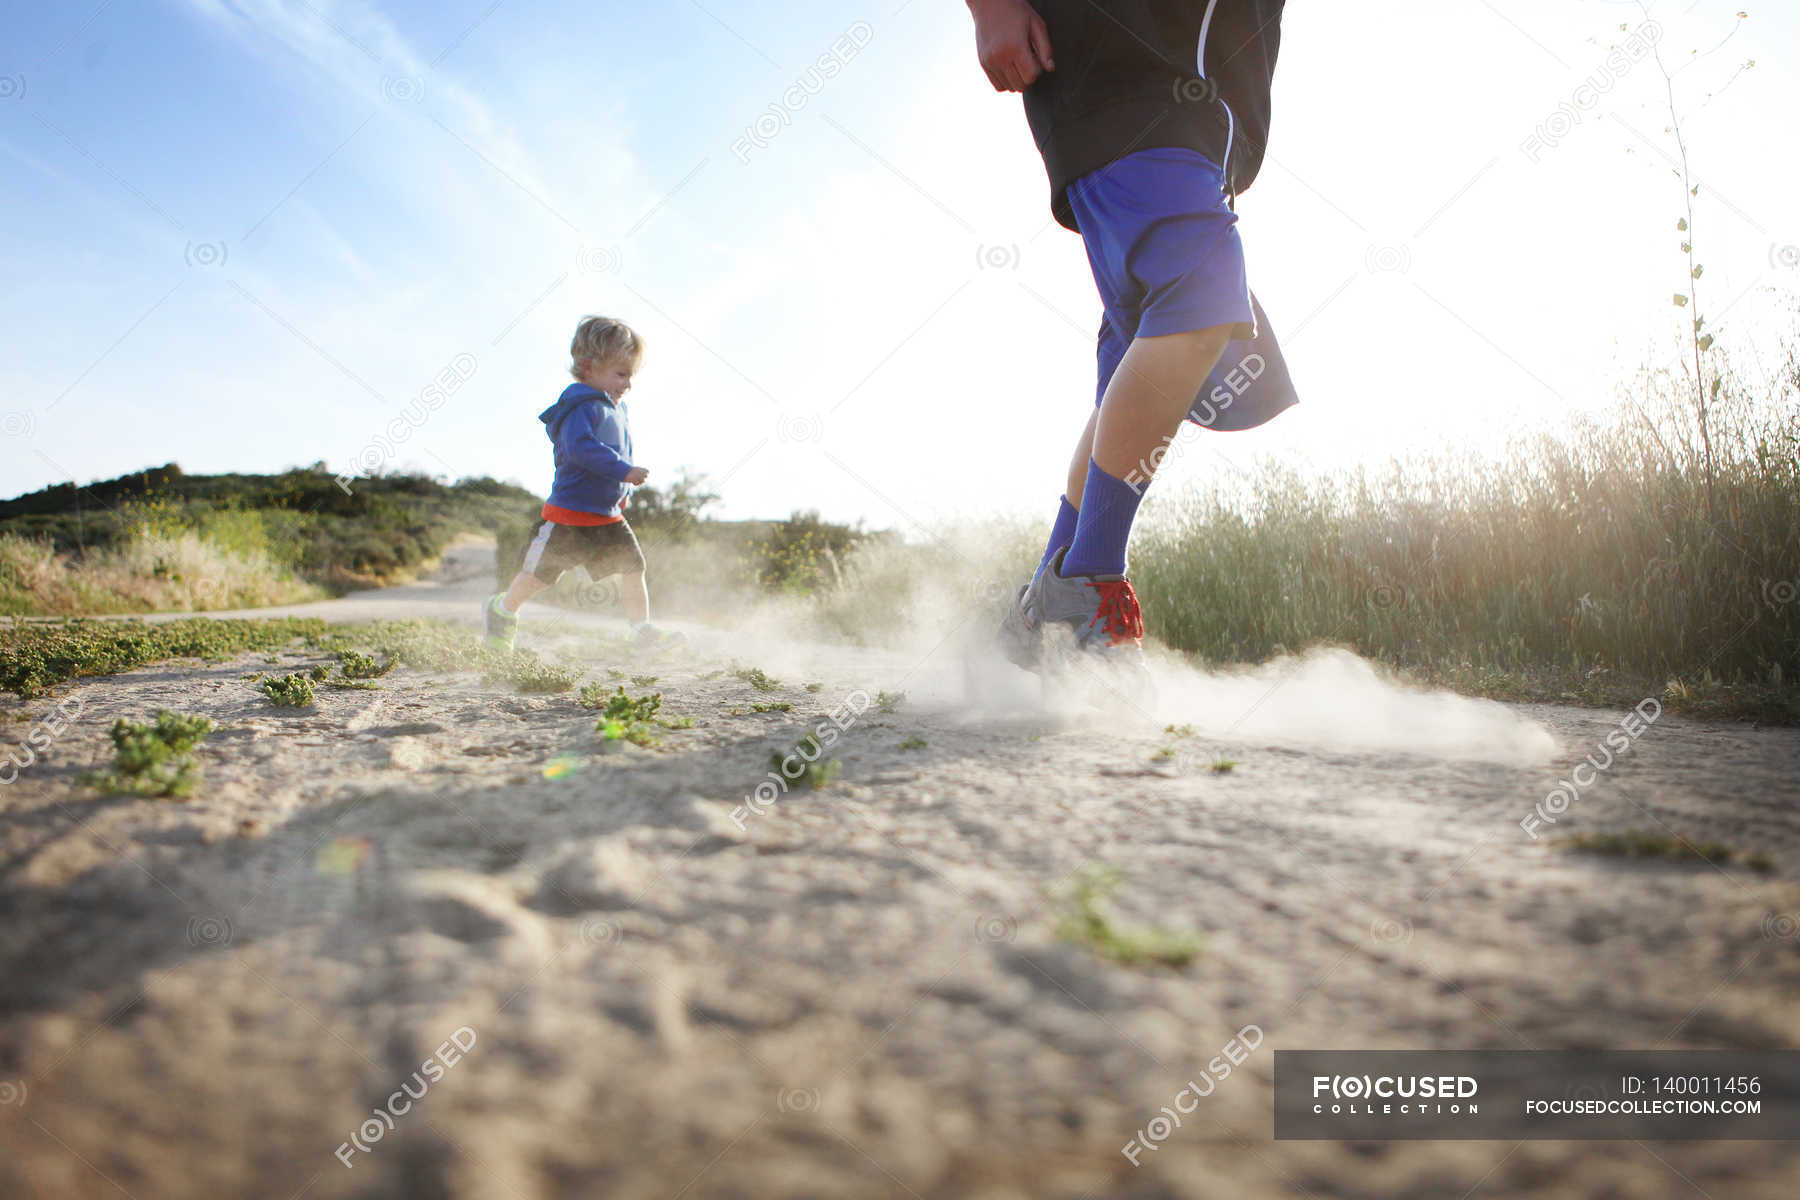 Two boys running outdoors — Stock Photo | #140011456